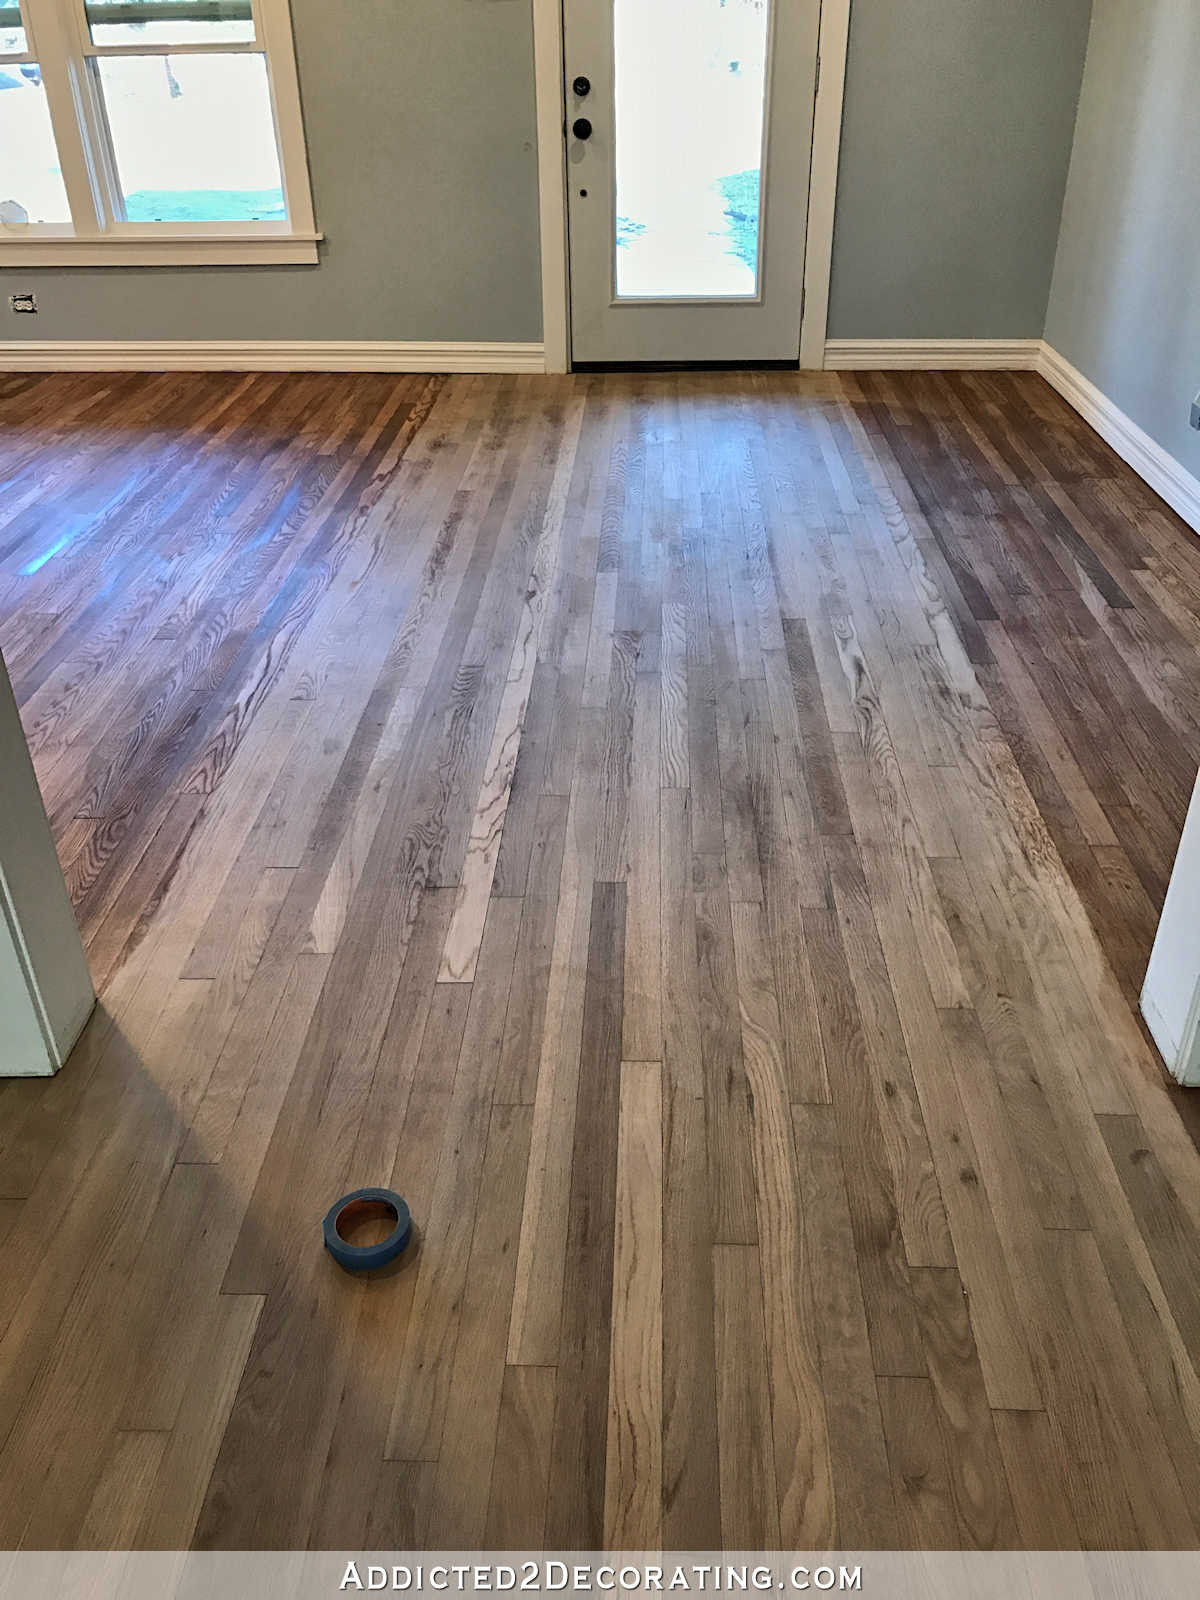 red oak hardwood floor colors of adventures in staining my red oak hardwood floors products process intended for staining red oak hardwood floors 4 entryway and living room wood conditioner